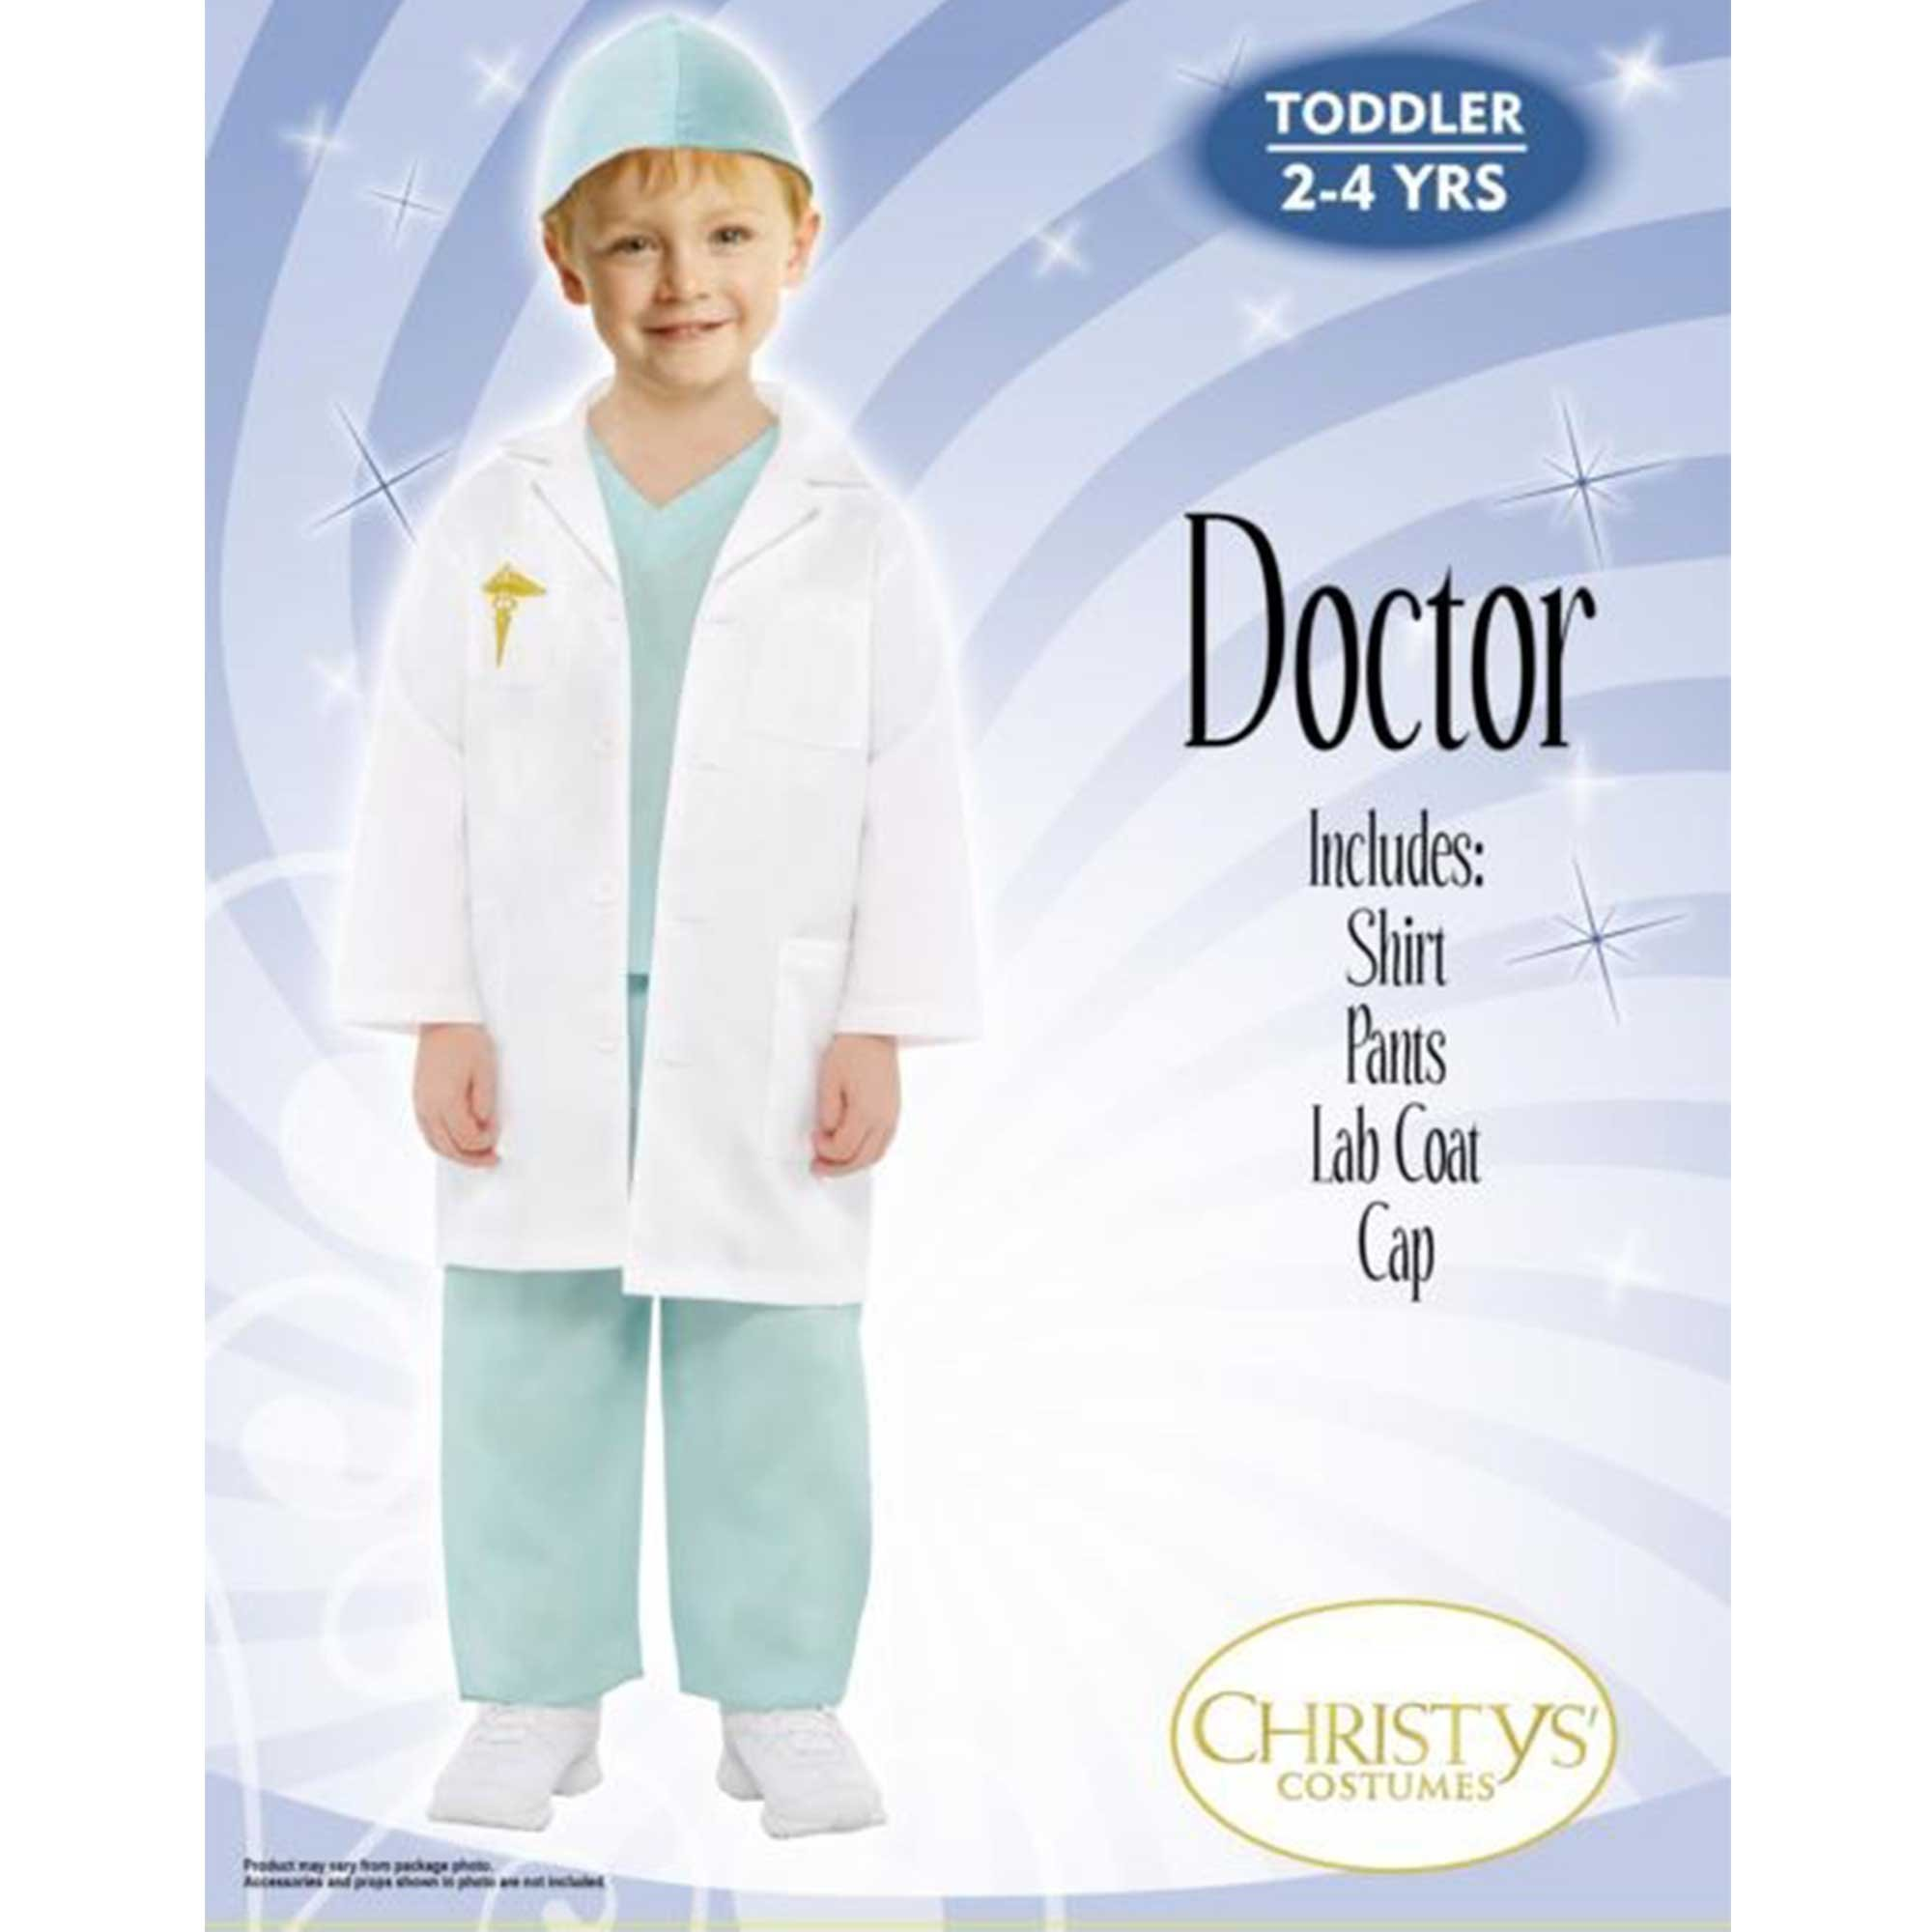 Costume Doctor Toddler 2-4 years